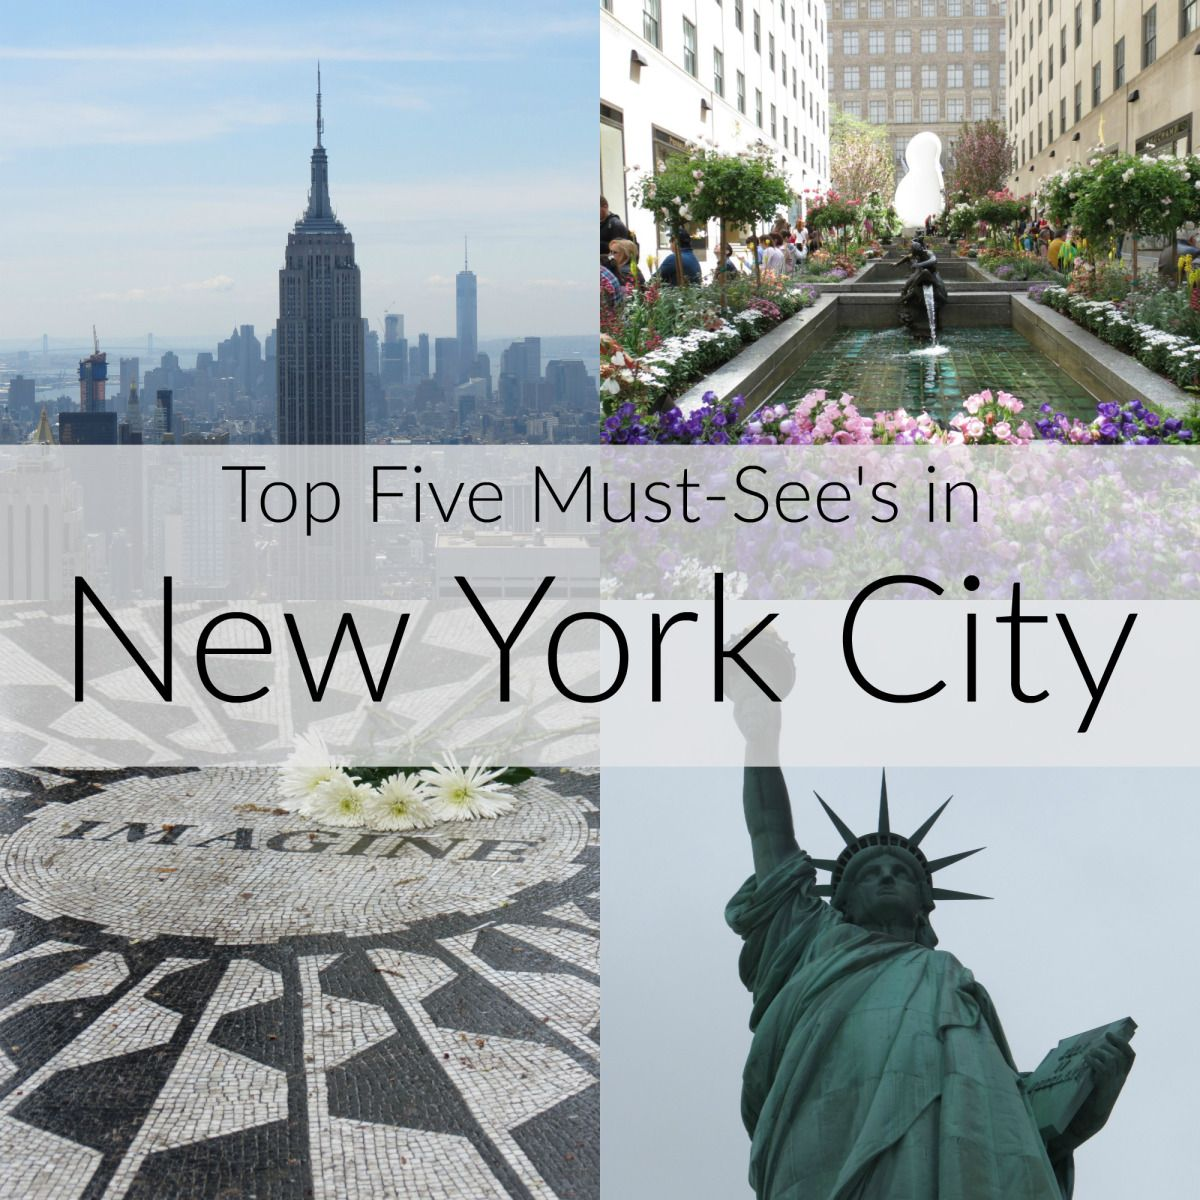 Our Top Five Must-See's in New York City! Great food, sights, and things to do in NYC. #weebeeadventures